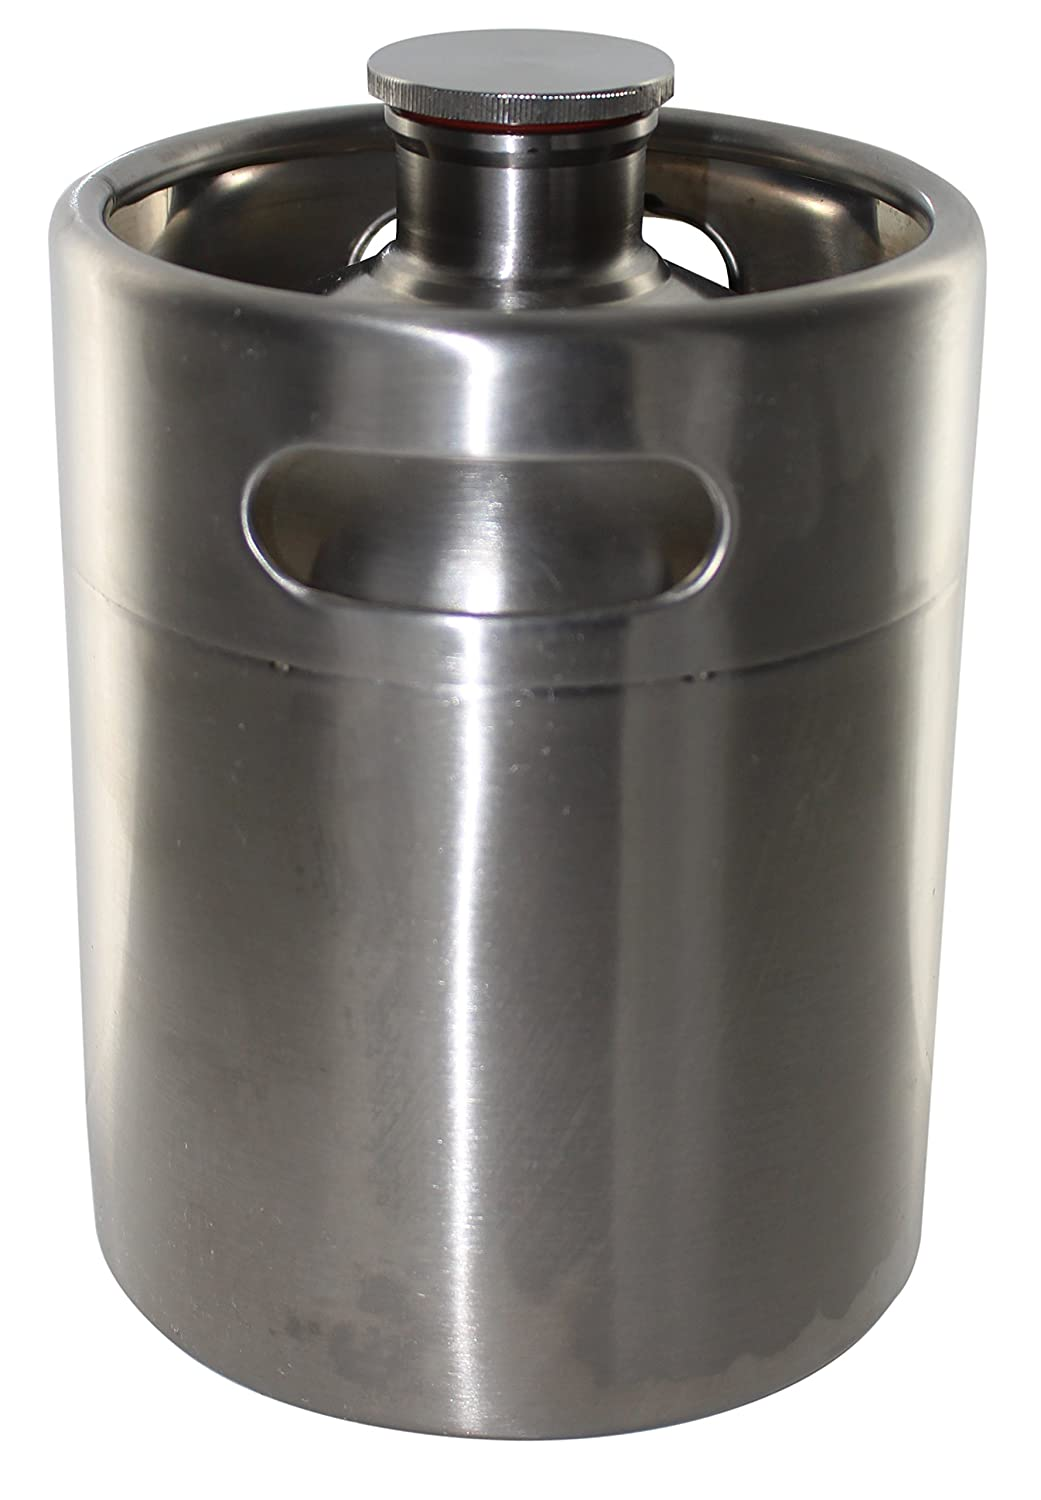 Brewhouse Keg Style Stainless Steel Beer 64 oz. Mini Keg Growler Home Brew Ohio Bs0097